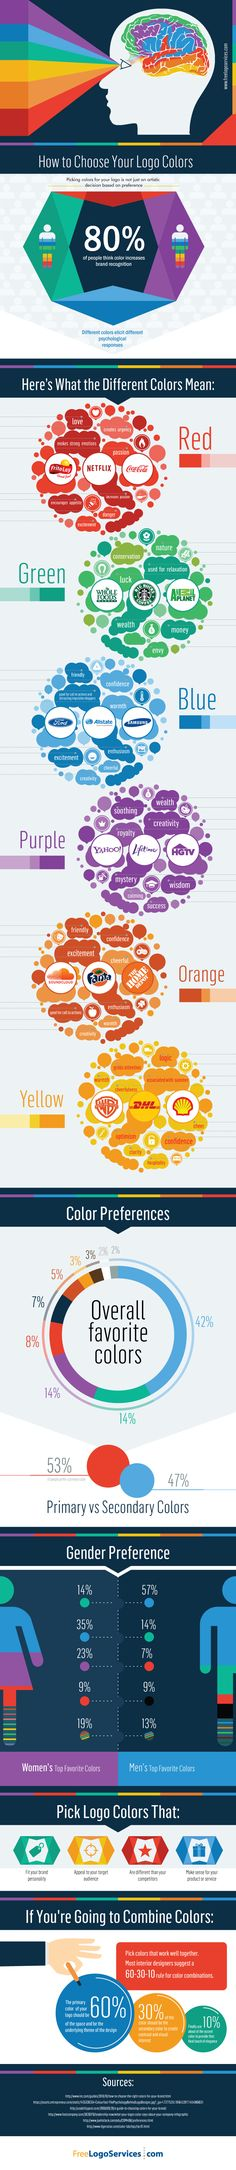 Infographic: How To Choose The Best Colors For Your Logo - DesignTAXI.com